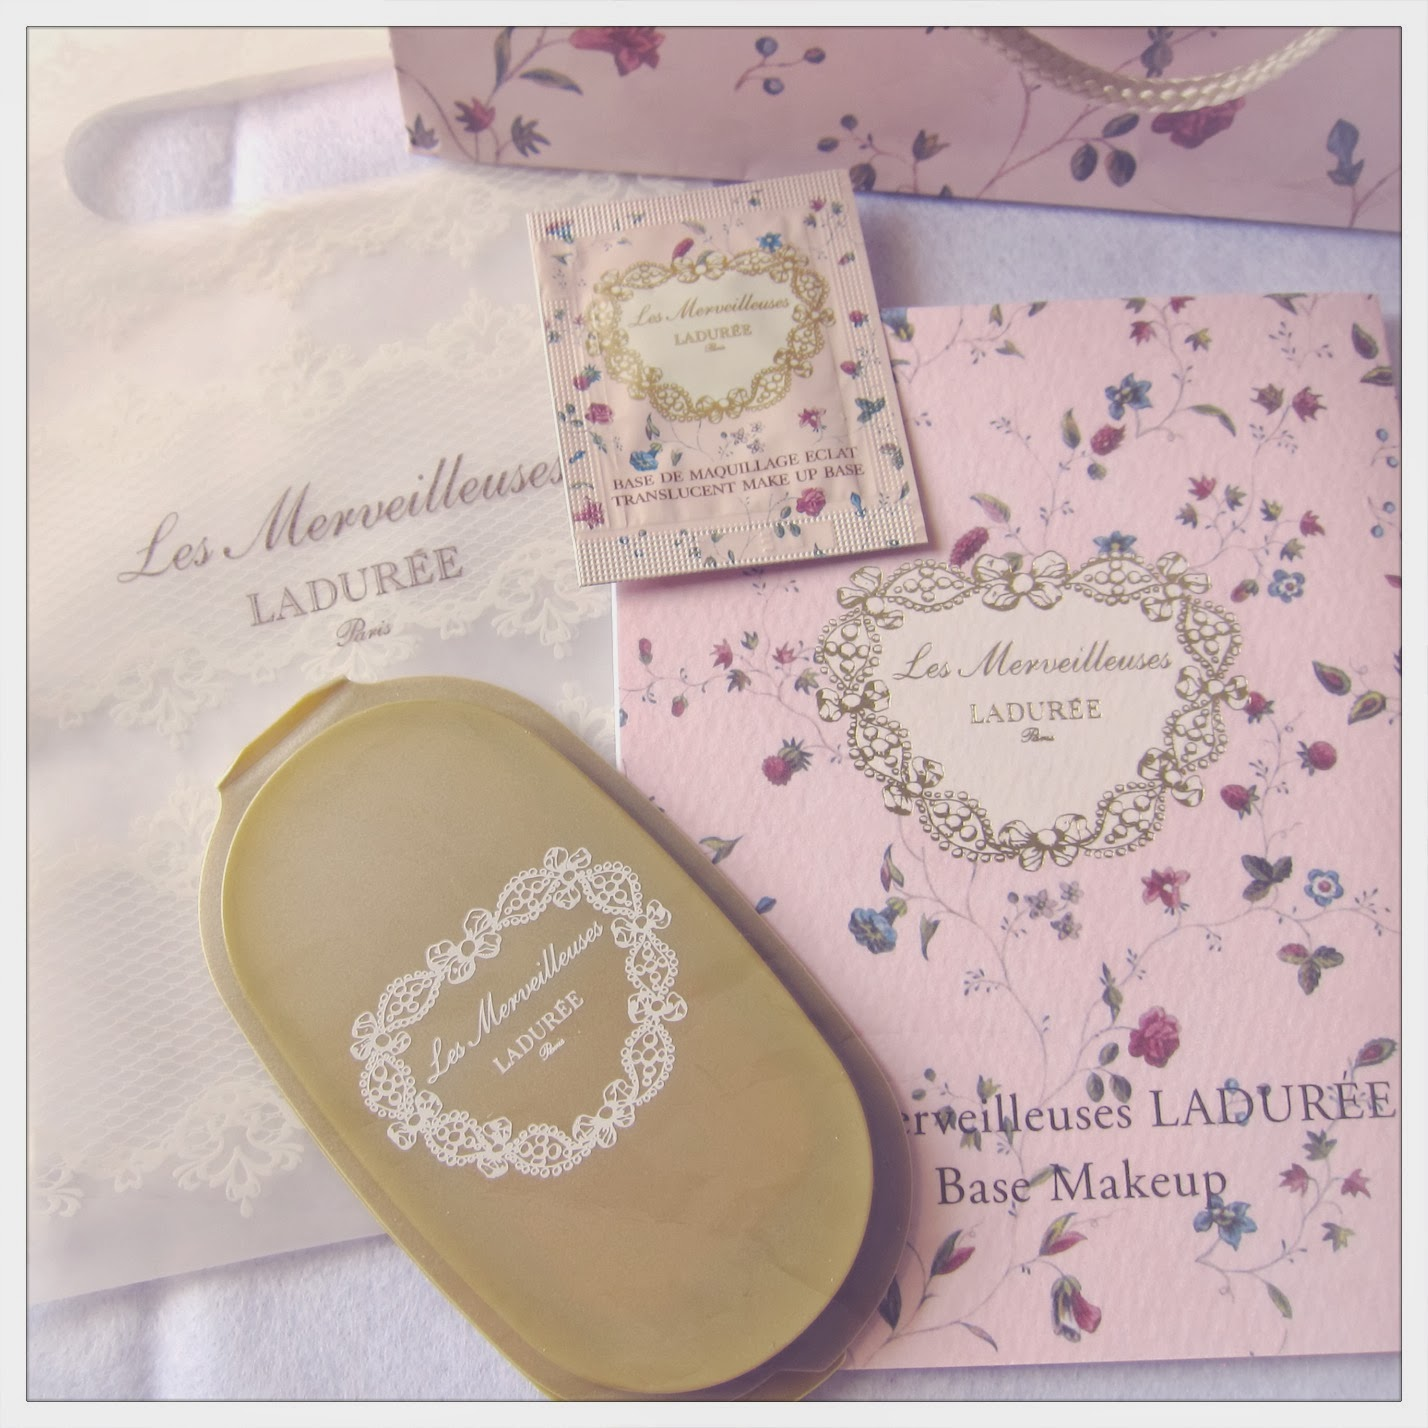 Missuety Laduree Les Merveilleuses Cheek Brush She Even Managed To Get Me The Foundation Samples